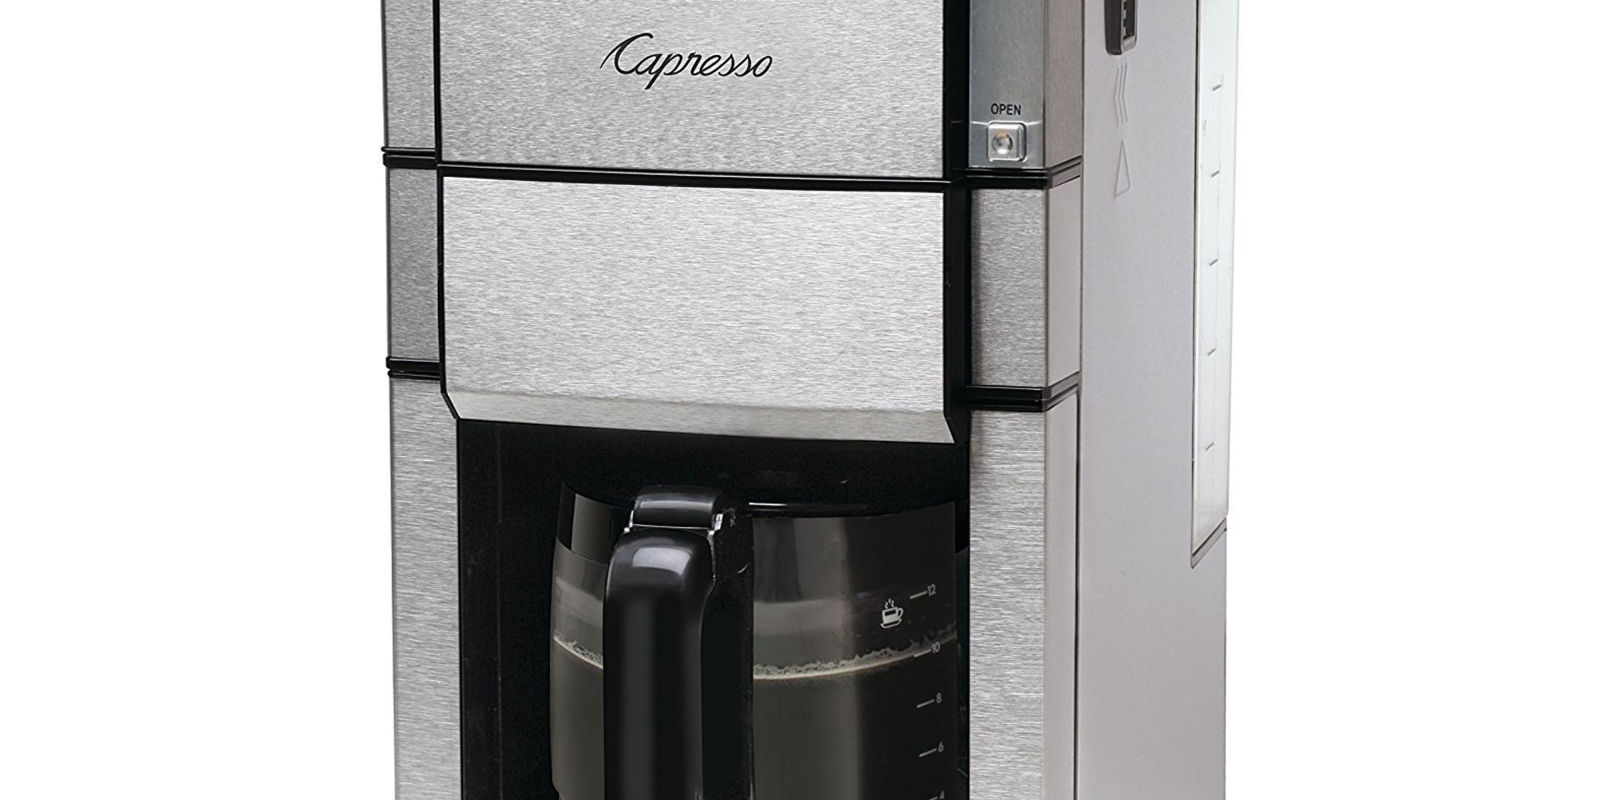 Kitchen Cabinet Makers Reviews Williams Sonoma Open Kitchen Coffeemaker Review Price And Features